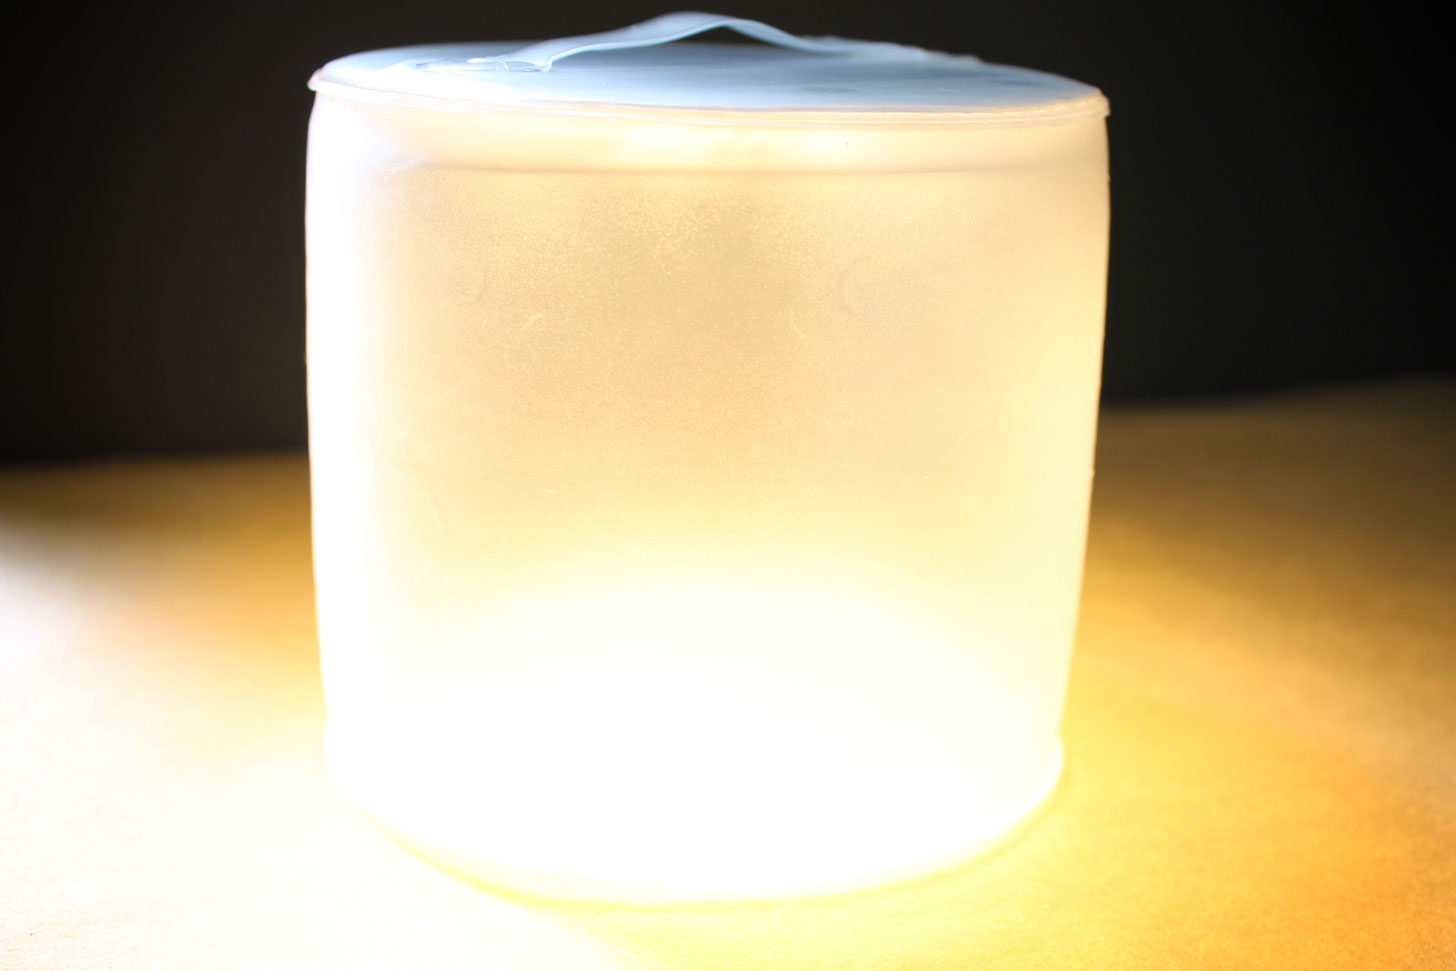 Review: Luci Inflatable Solar light. #gear #backpacking #camping #solar #light #review